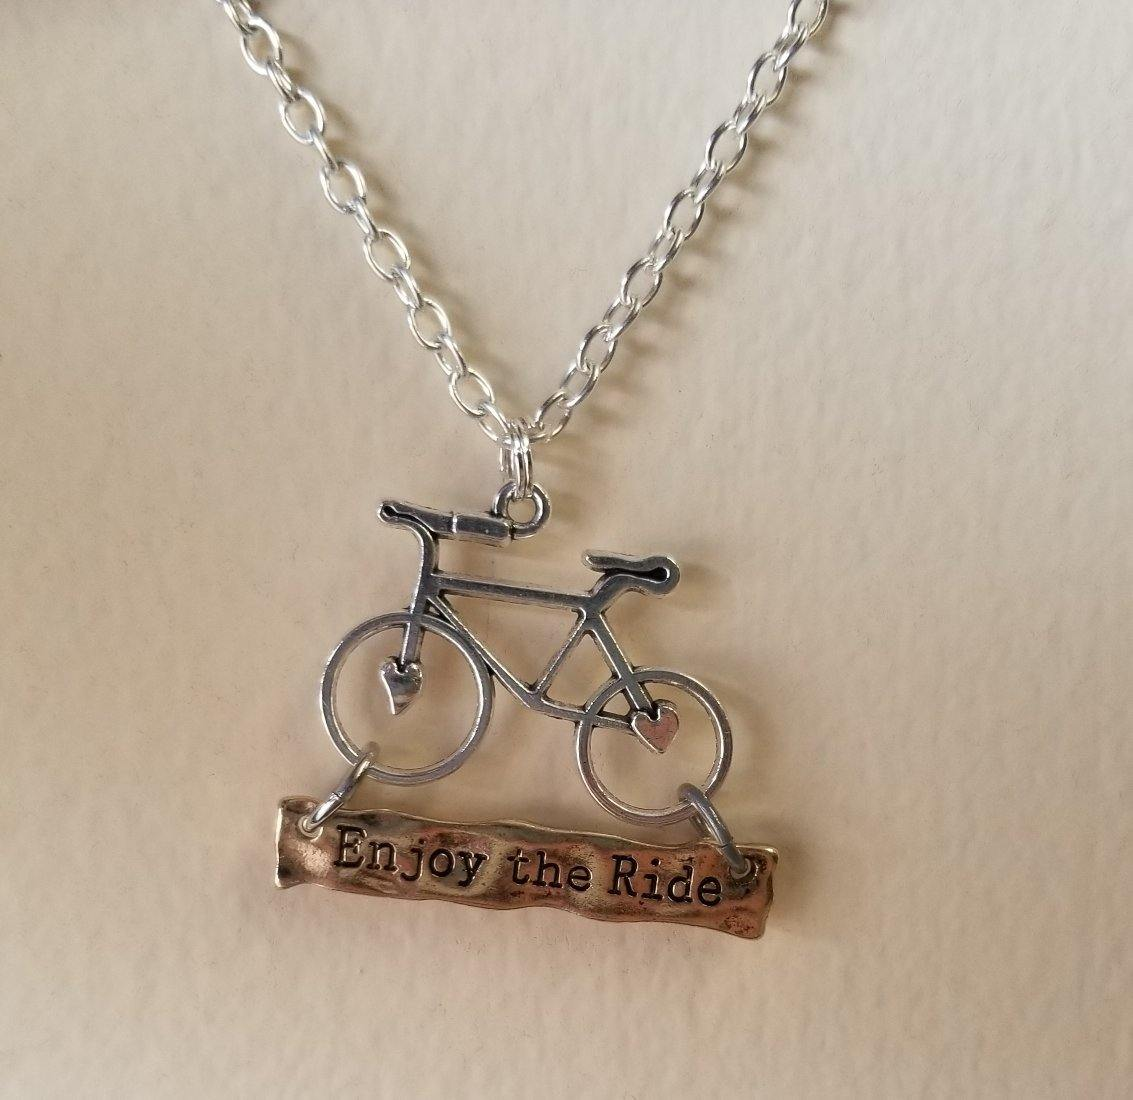 Enjoy The Ride Bicycle Pendant Necklace